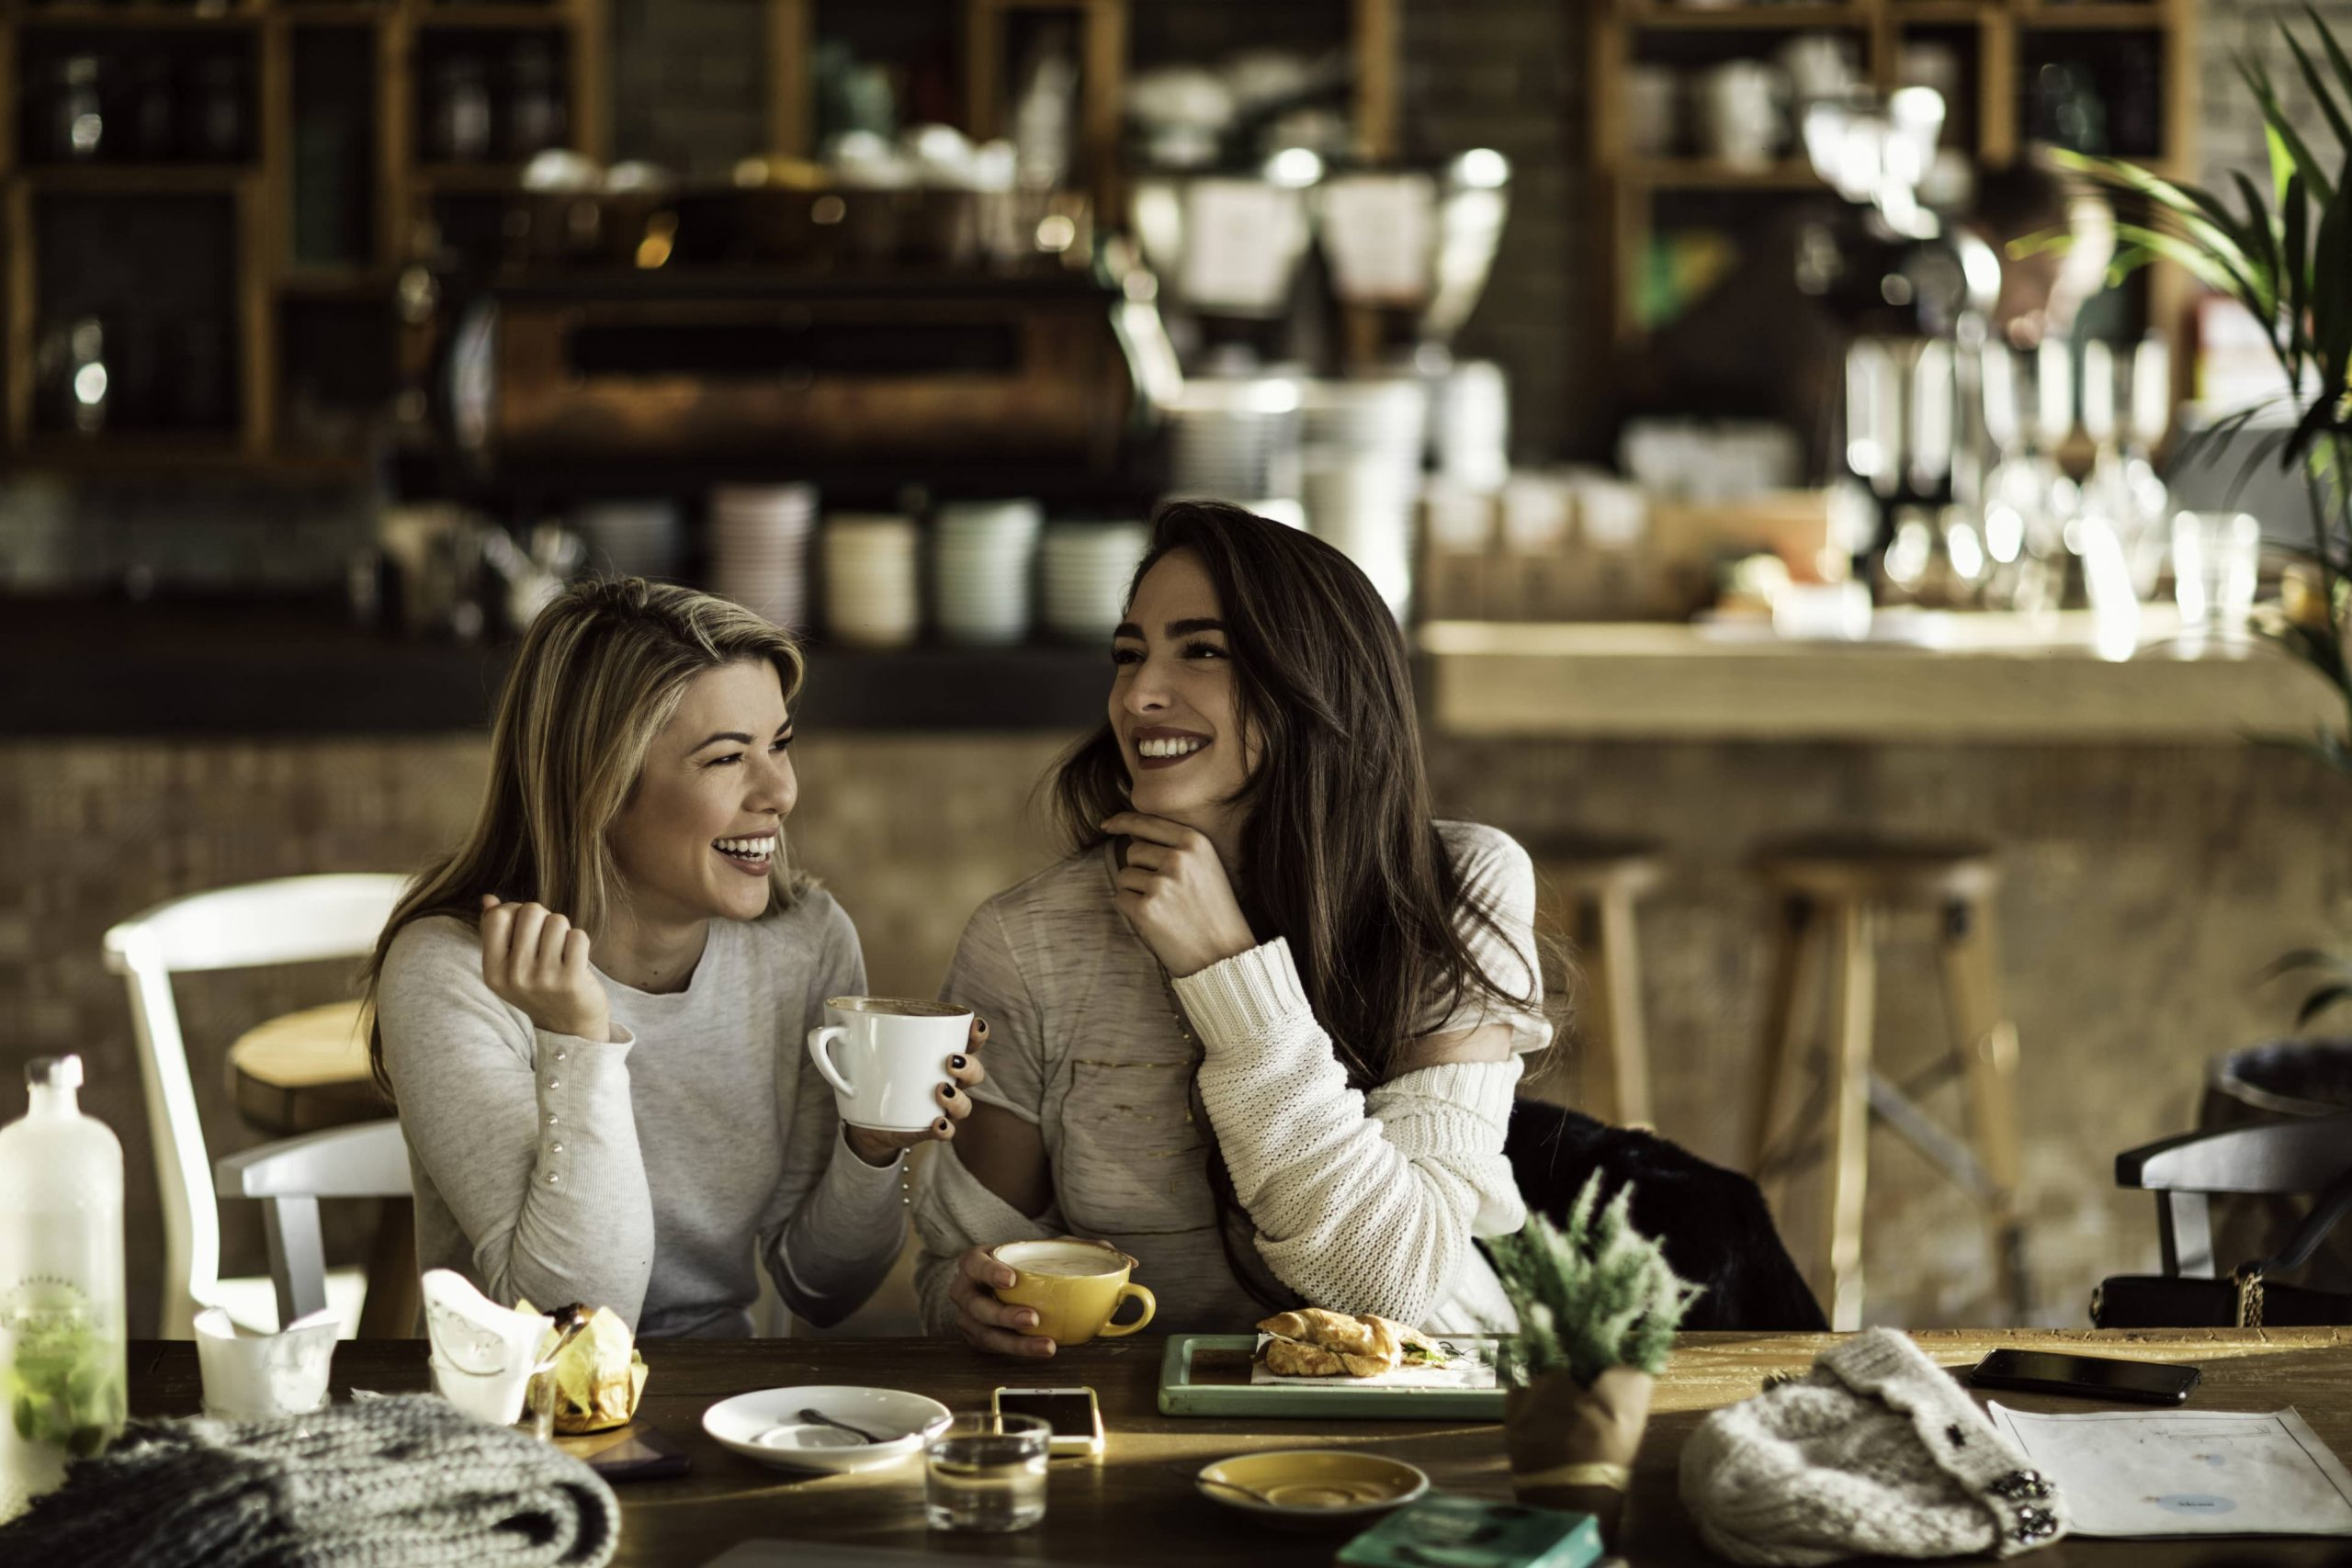 Two smiling women drinking tea in the kitchen